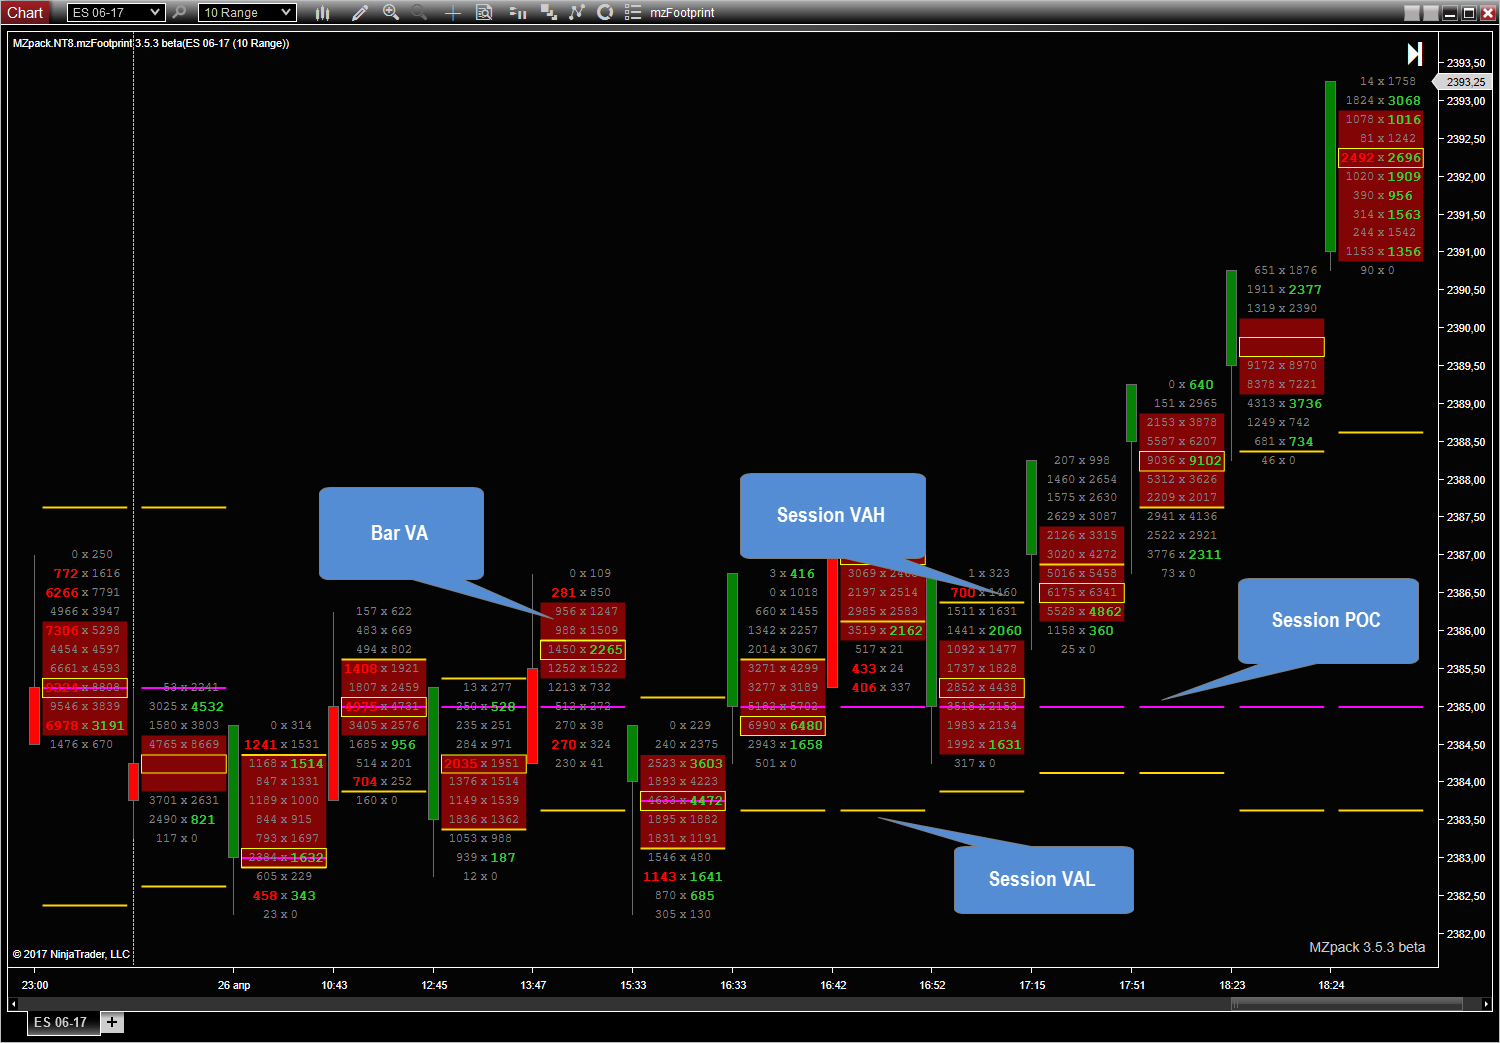 mzpack-footprint-indicator-for-ninjatrader-8-3-5-3